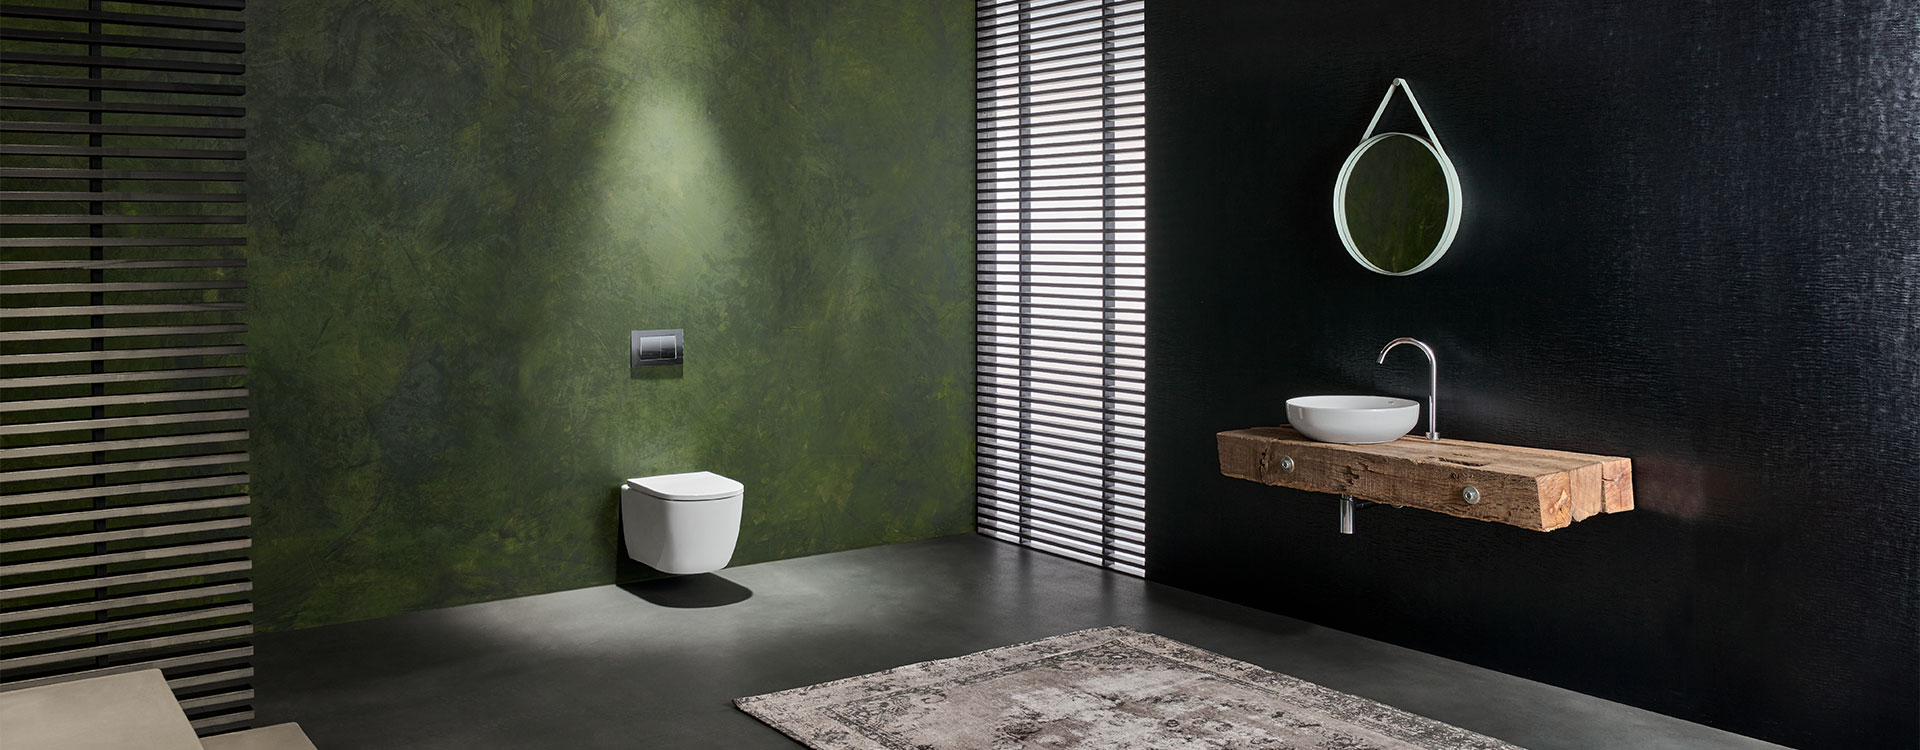 AXENT.ONE C toilet rimfree | Features